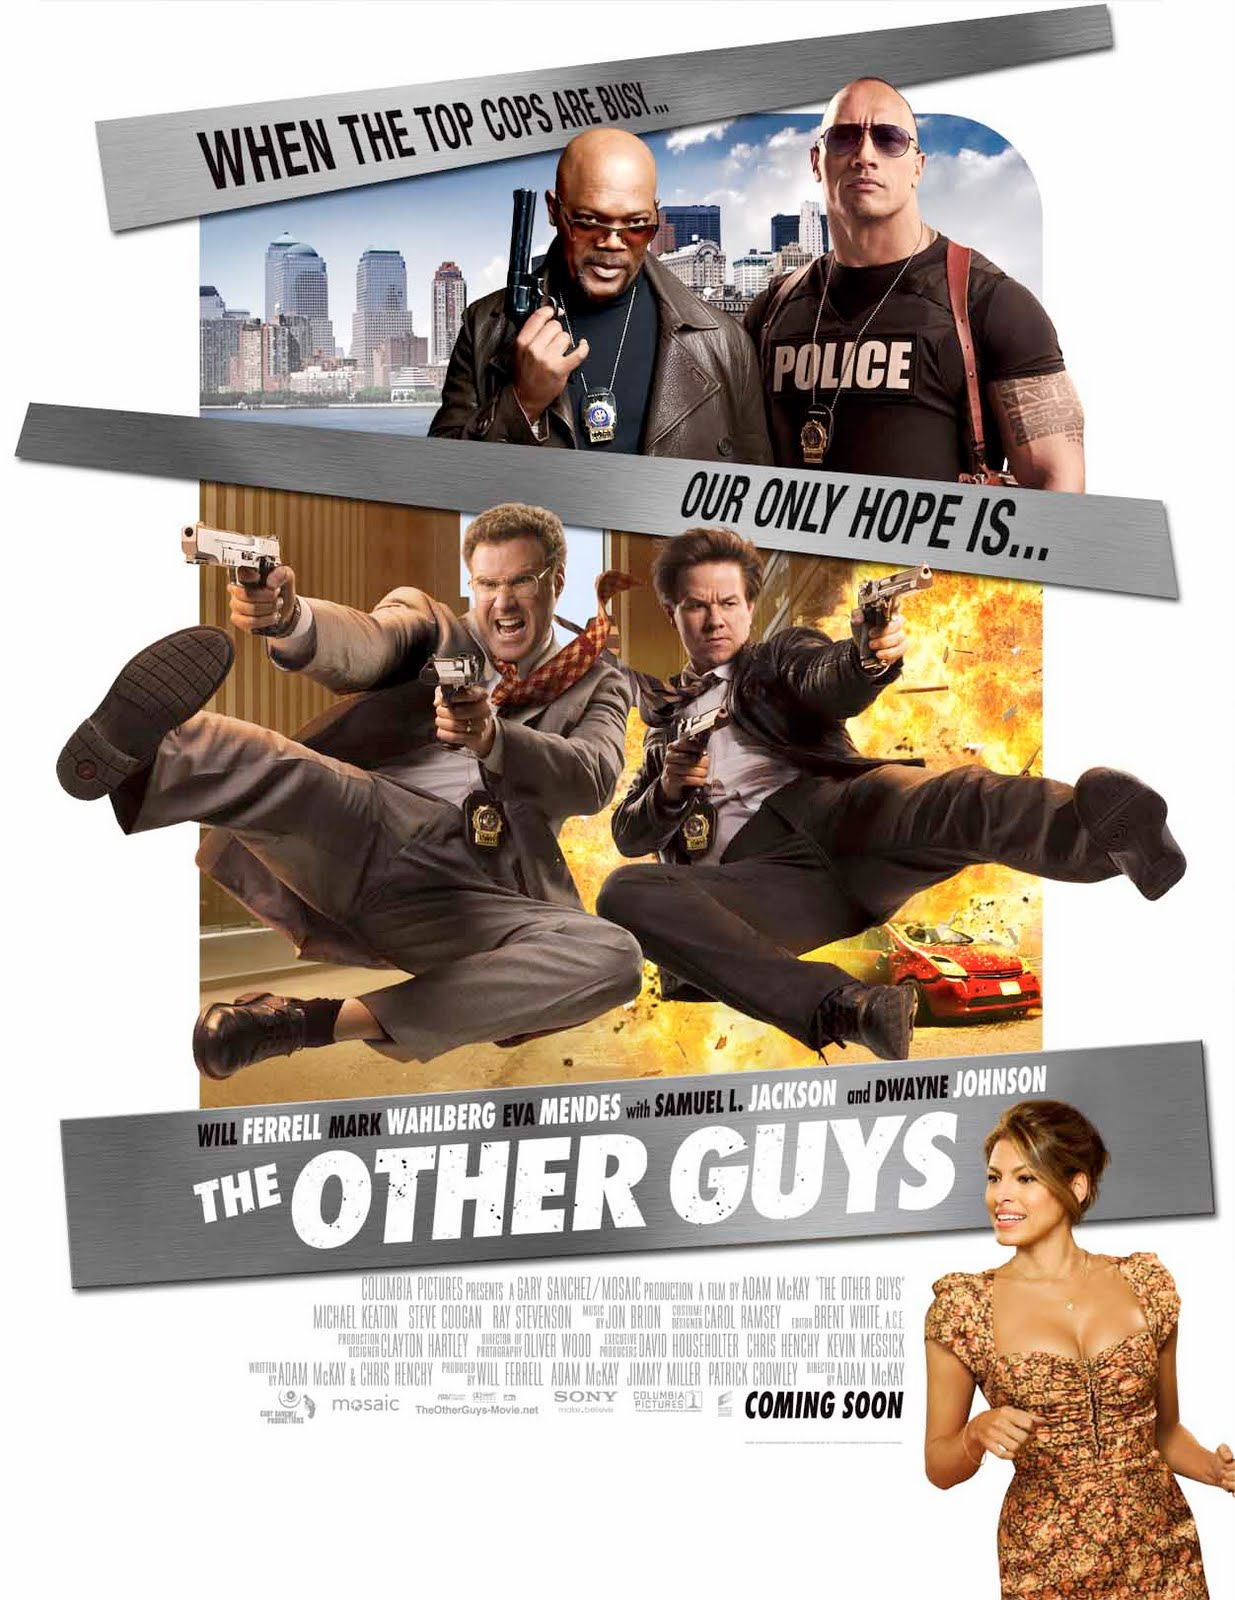 http://4.bp.blogspot.com/-Yakkw3sQIes/TlcorZ39CzI/AAAAAAAACY4/-bMQXGth5uA/s1600/the-other-guys-movie-poster.jpg